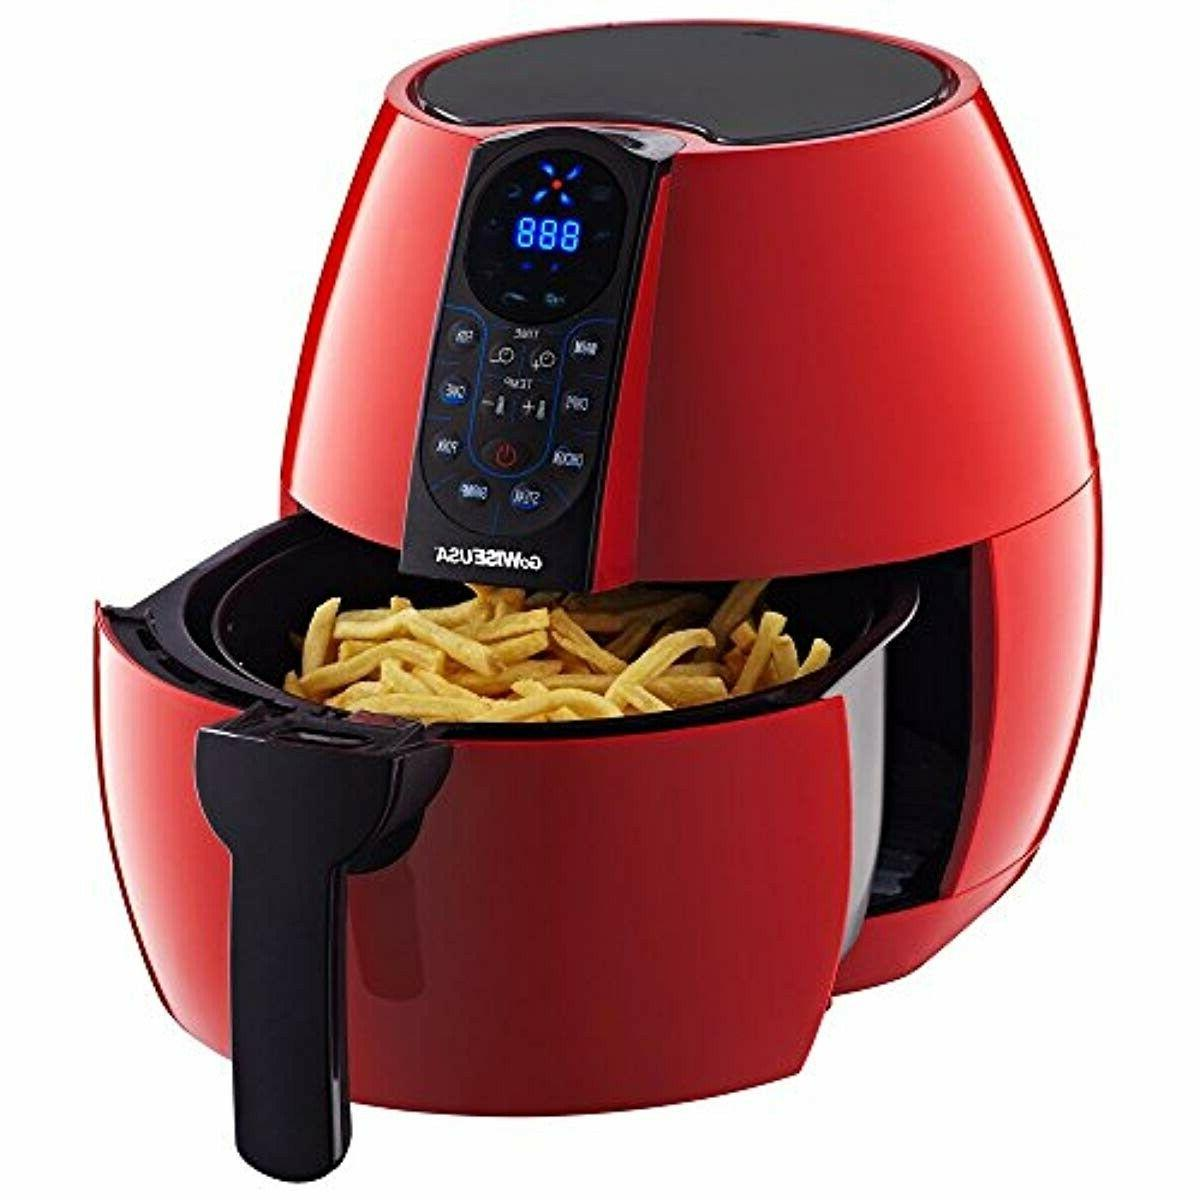 GoWISE USA 3.7-Quart Programmable Air Cook GW22639